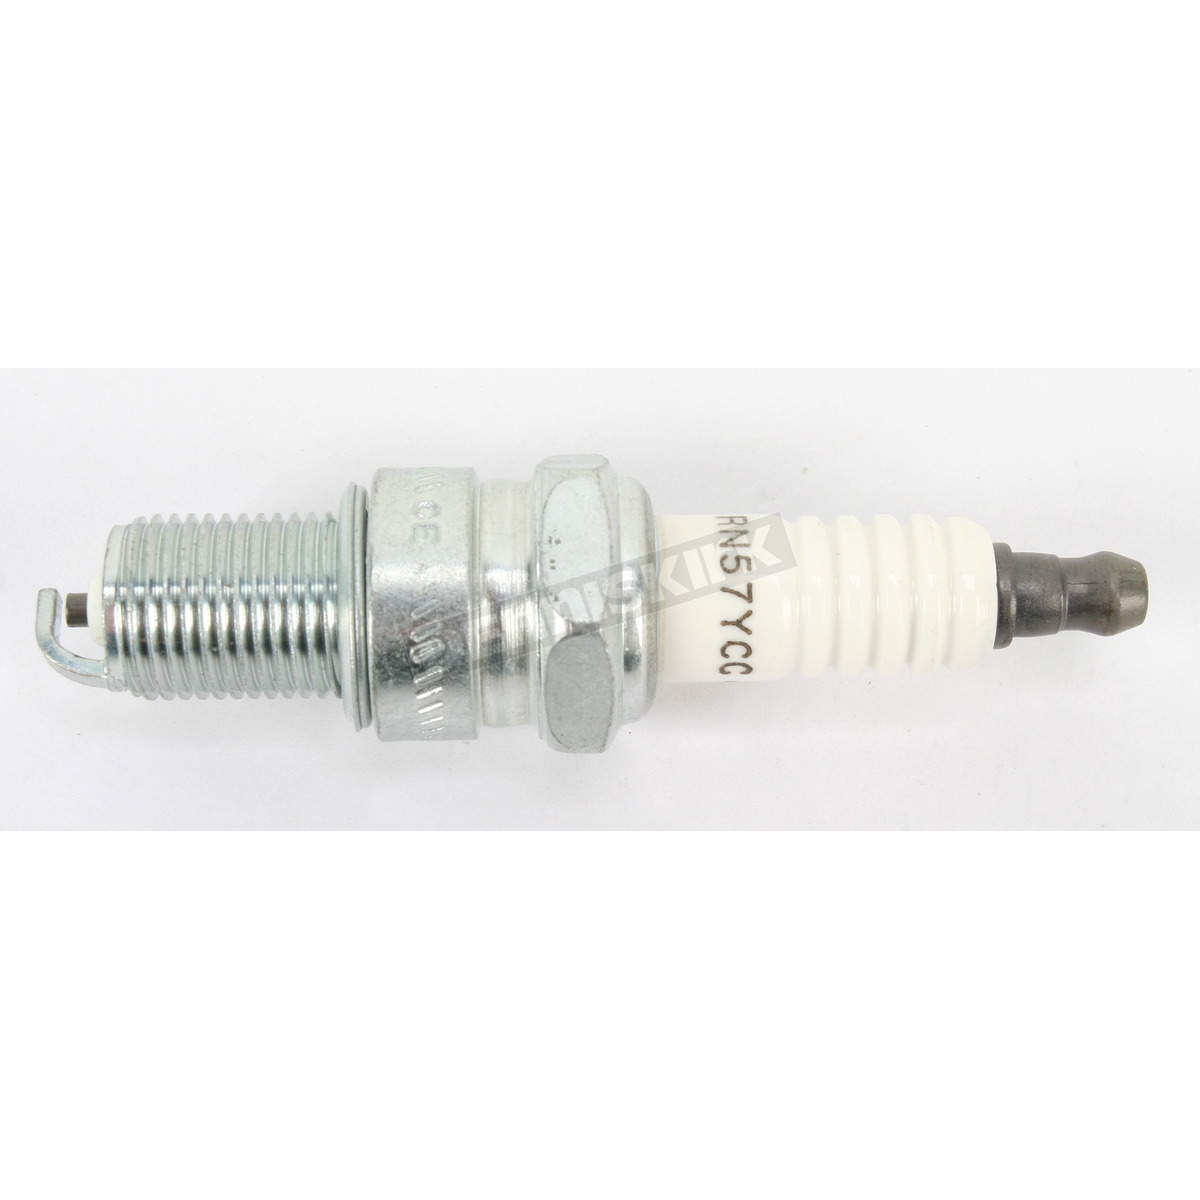 Champion Spark Plug Rn57ycc Snowmobile Dennis Kirk 2013 Polaris Switch Back 600 Wiring Diagram